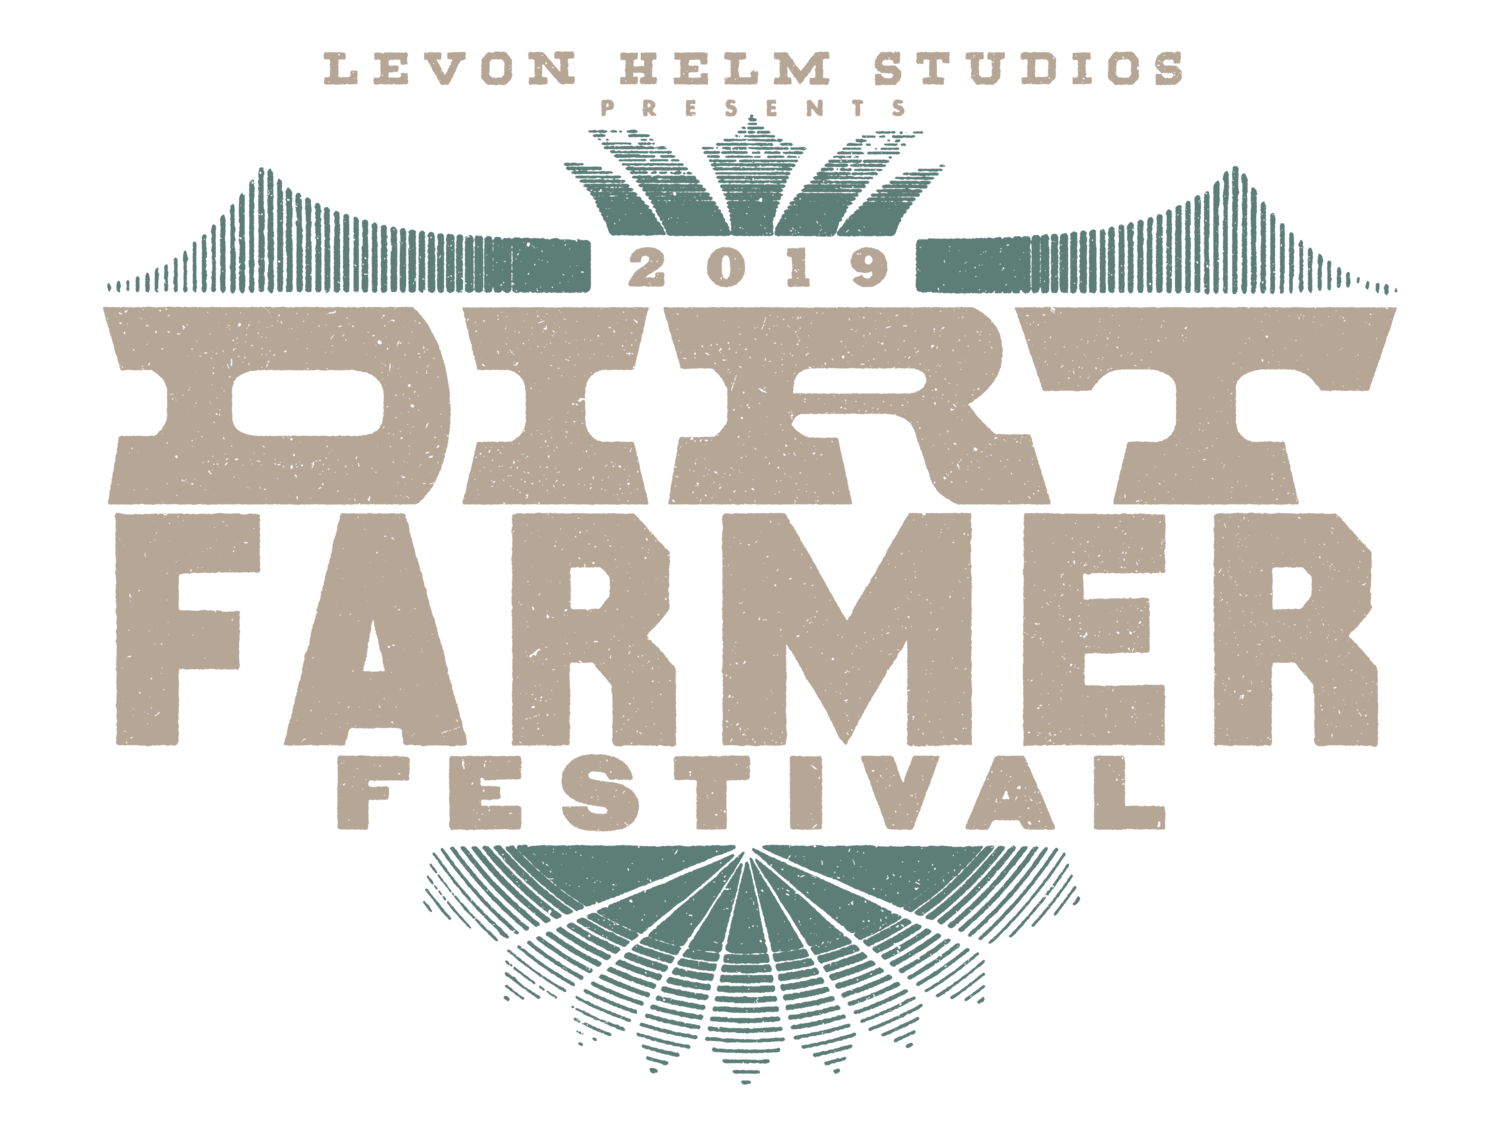 Dirt Farmer Festival presented by Levon Helm Studios